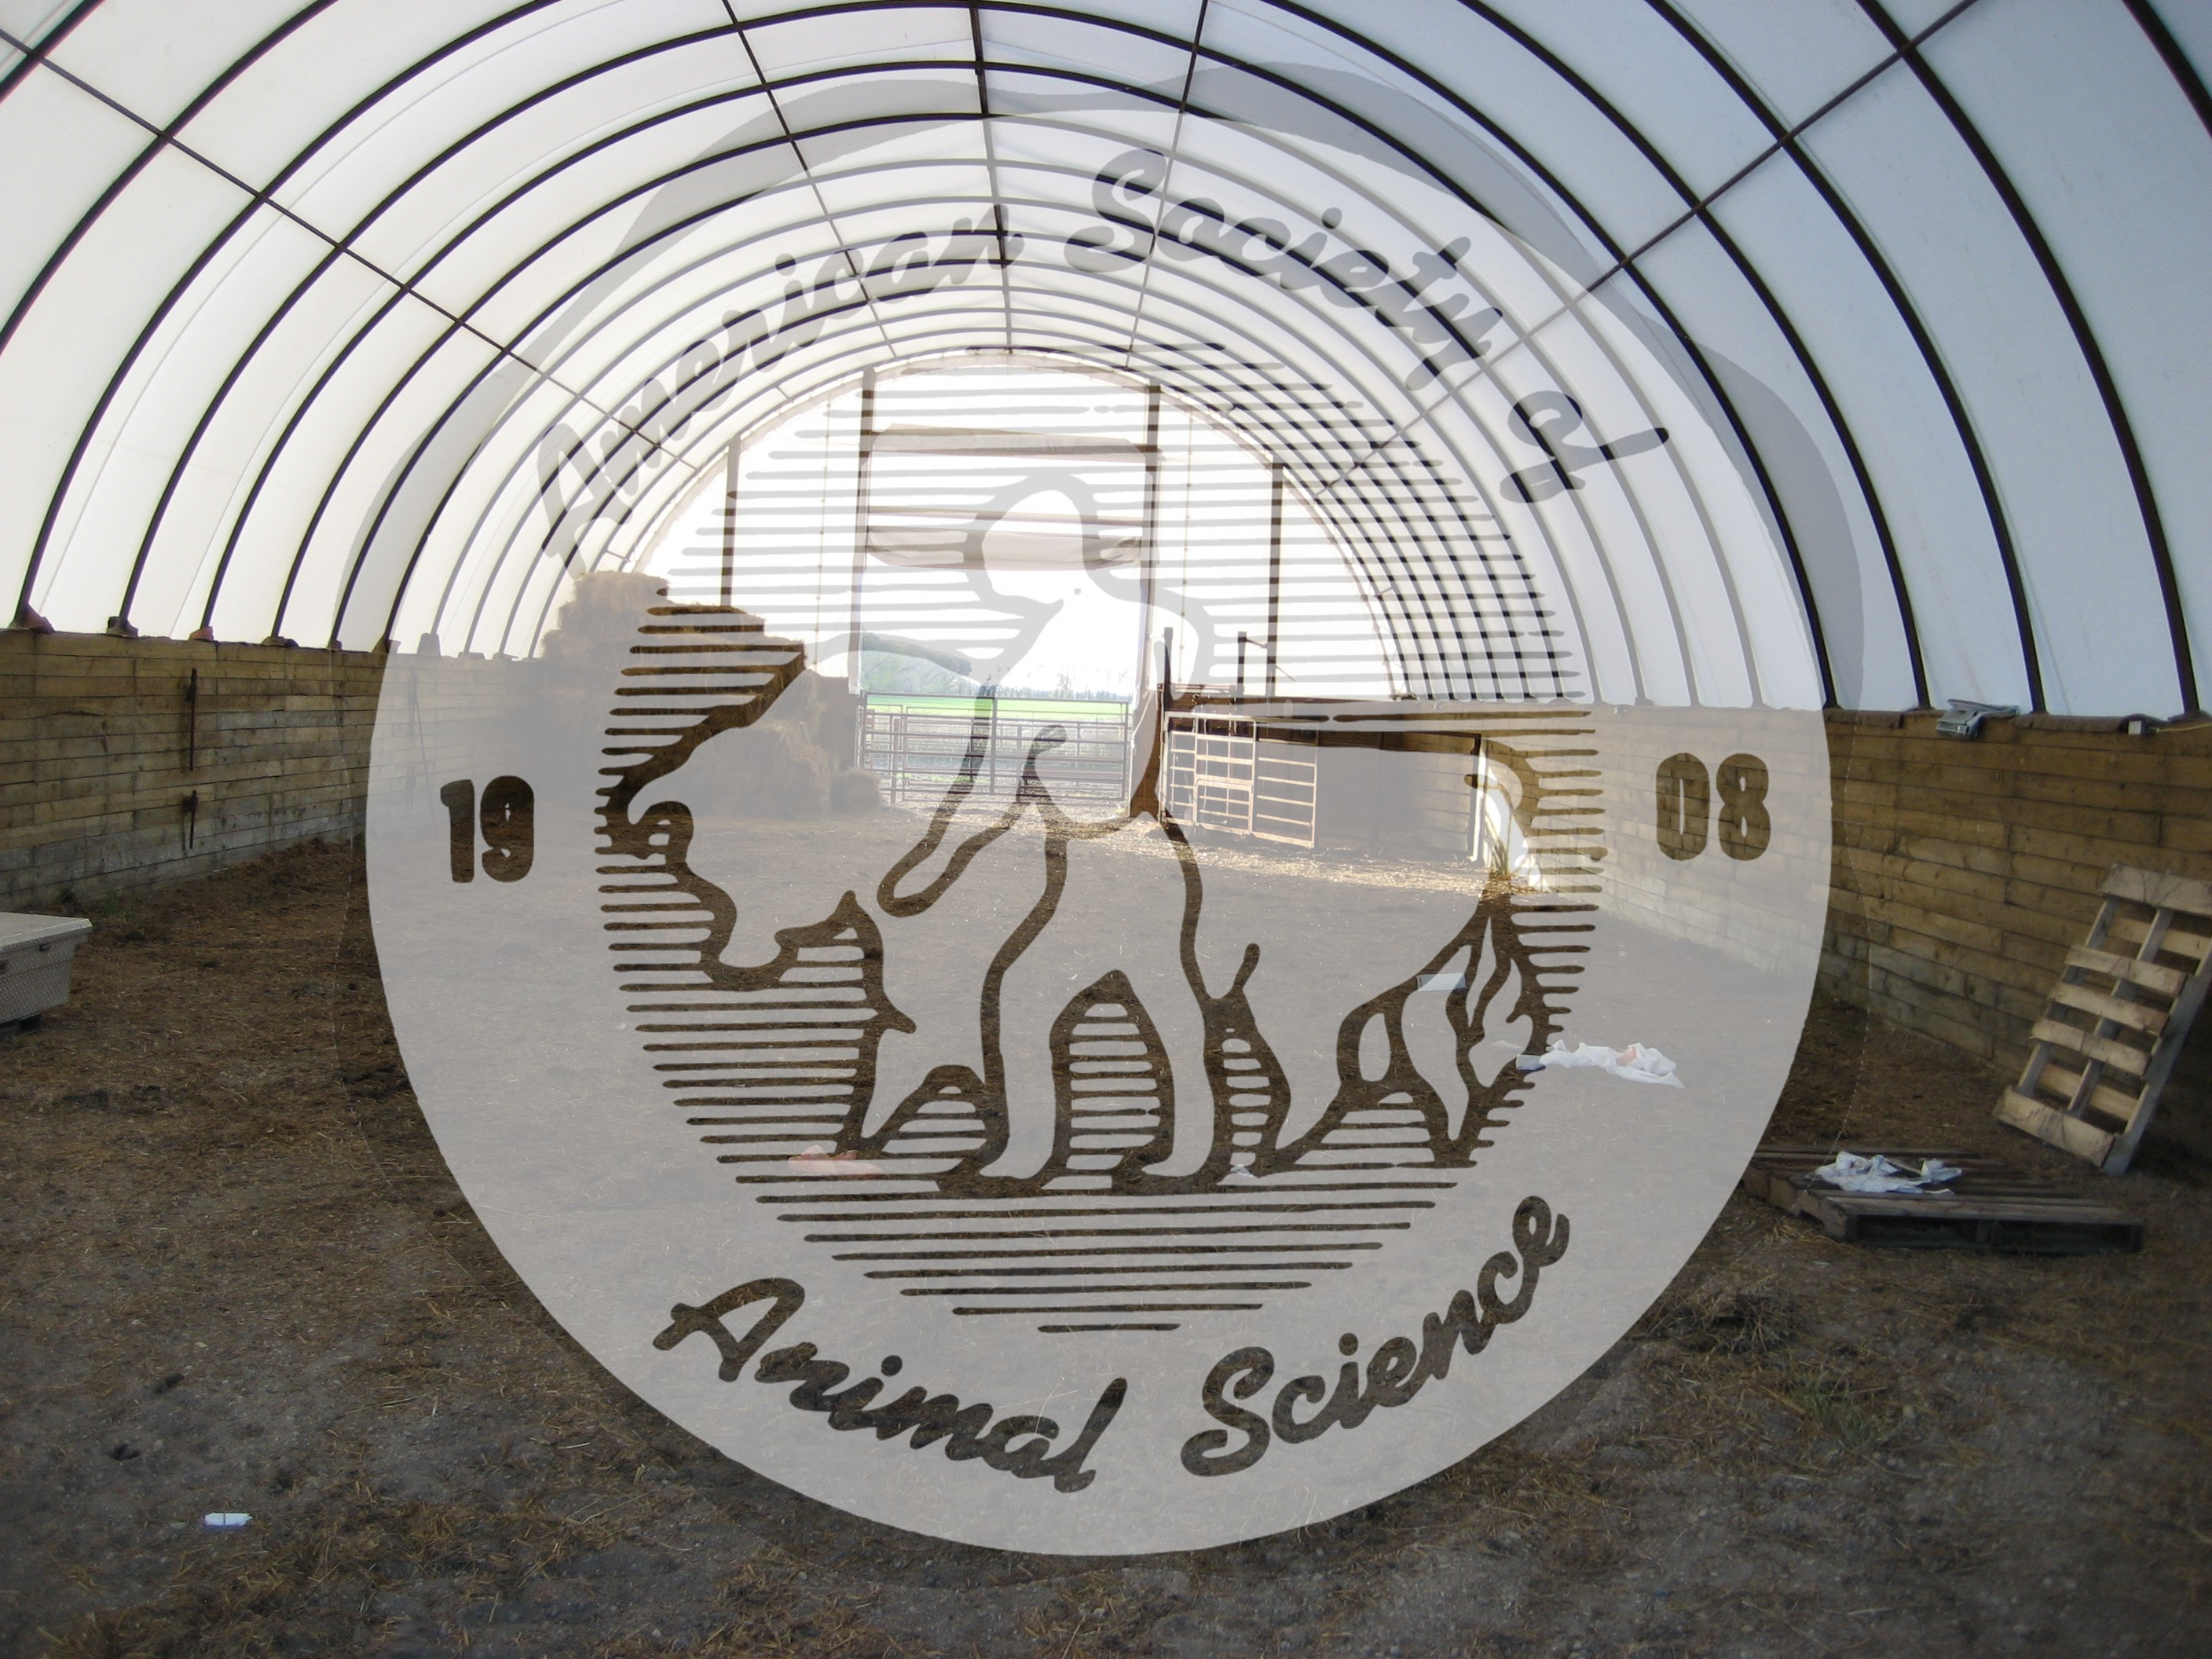 Hoop barns are found on farms and ranches across the Midwest and Plains states.  This hoop barn is located in southeastern North Dakota and is used as a calving shed.  The right-hand side of the hoop barn in this picture is set up as a maternity area for assisting beef cows when dystocia is encountered.